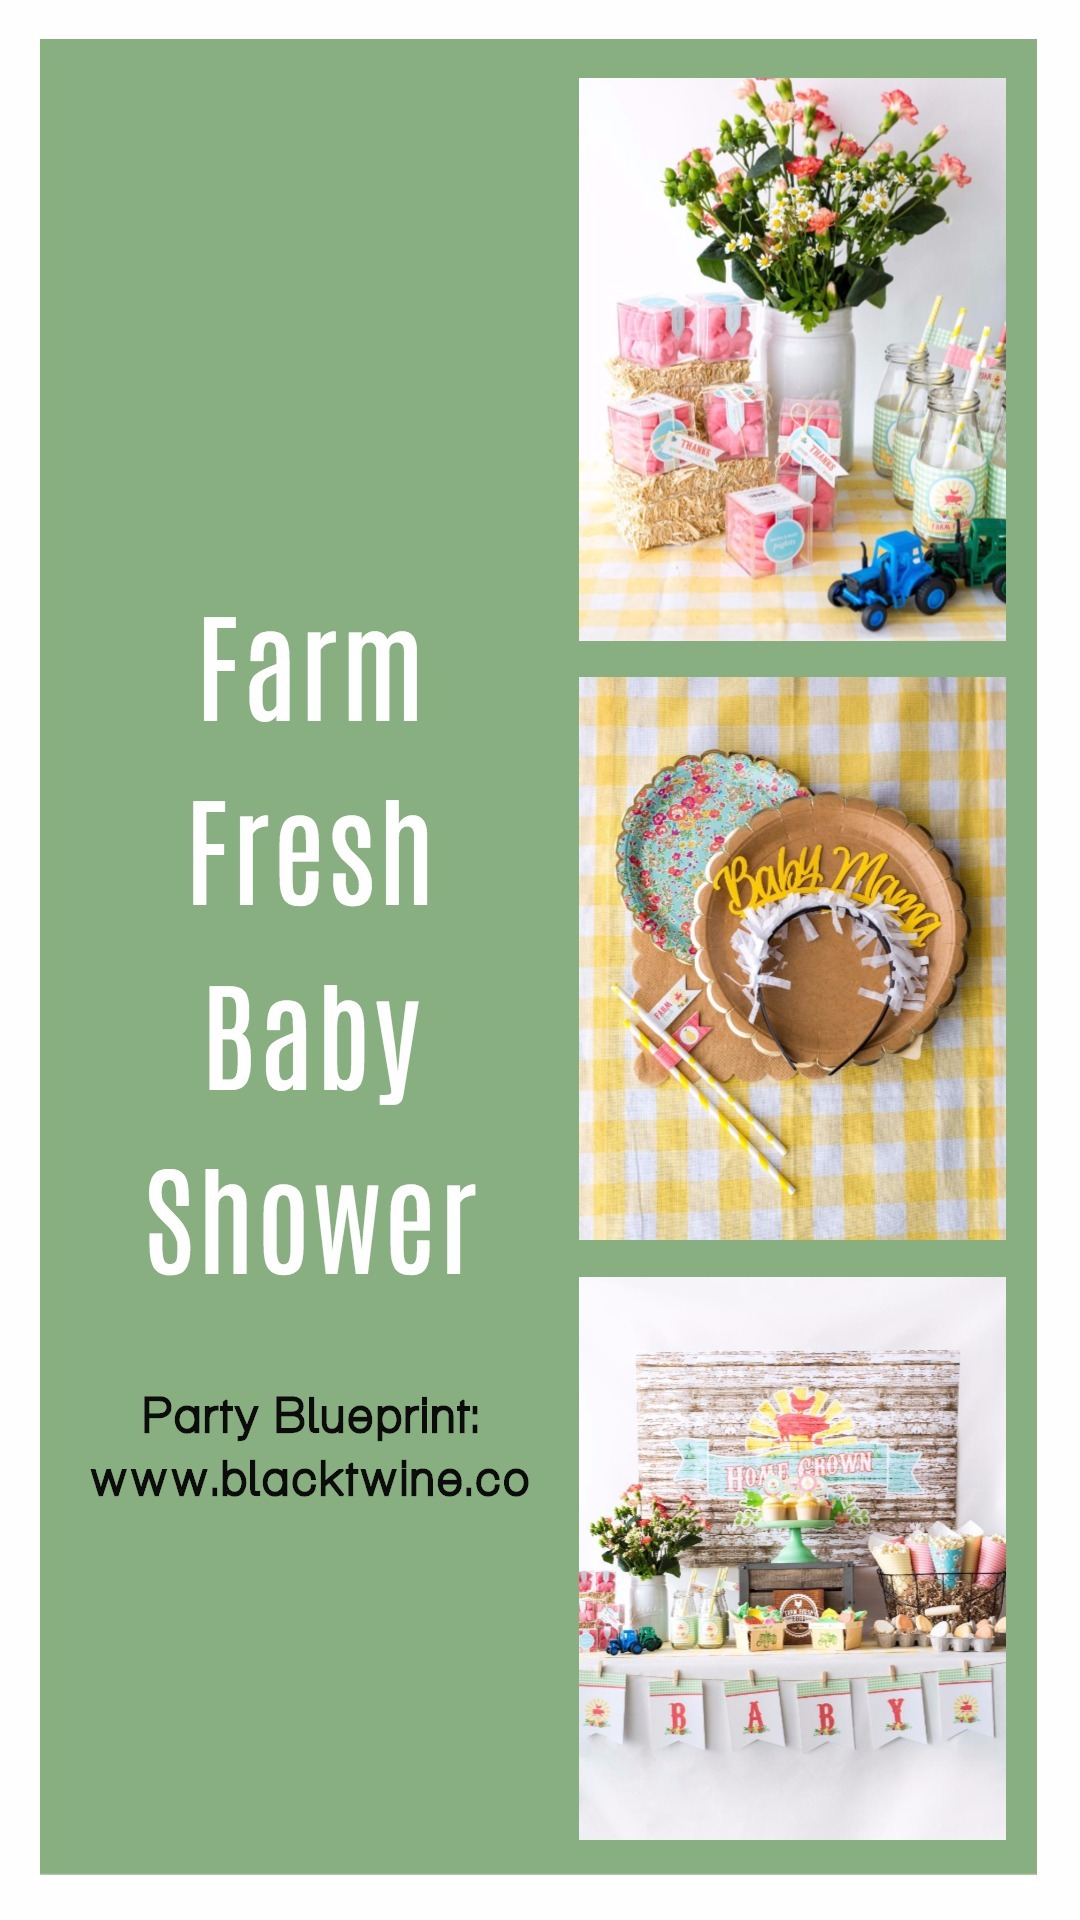 Farm Fresh Baby Shower Styled by Black Twine